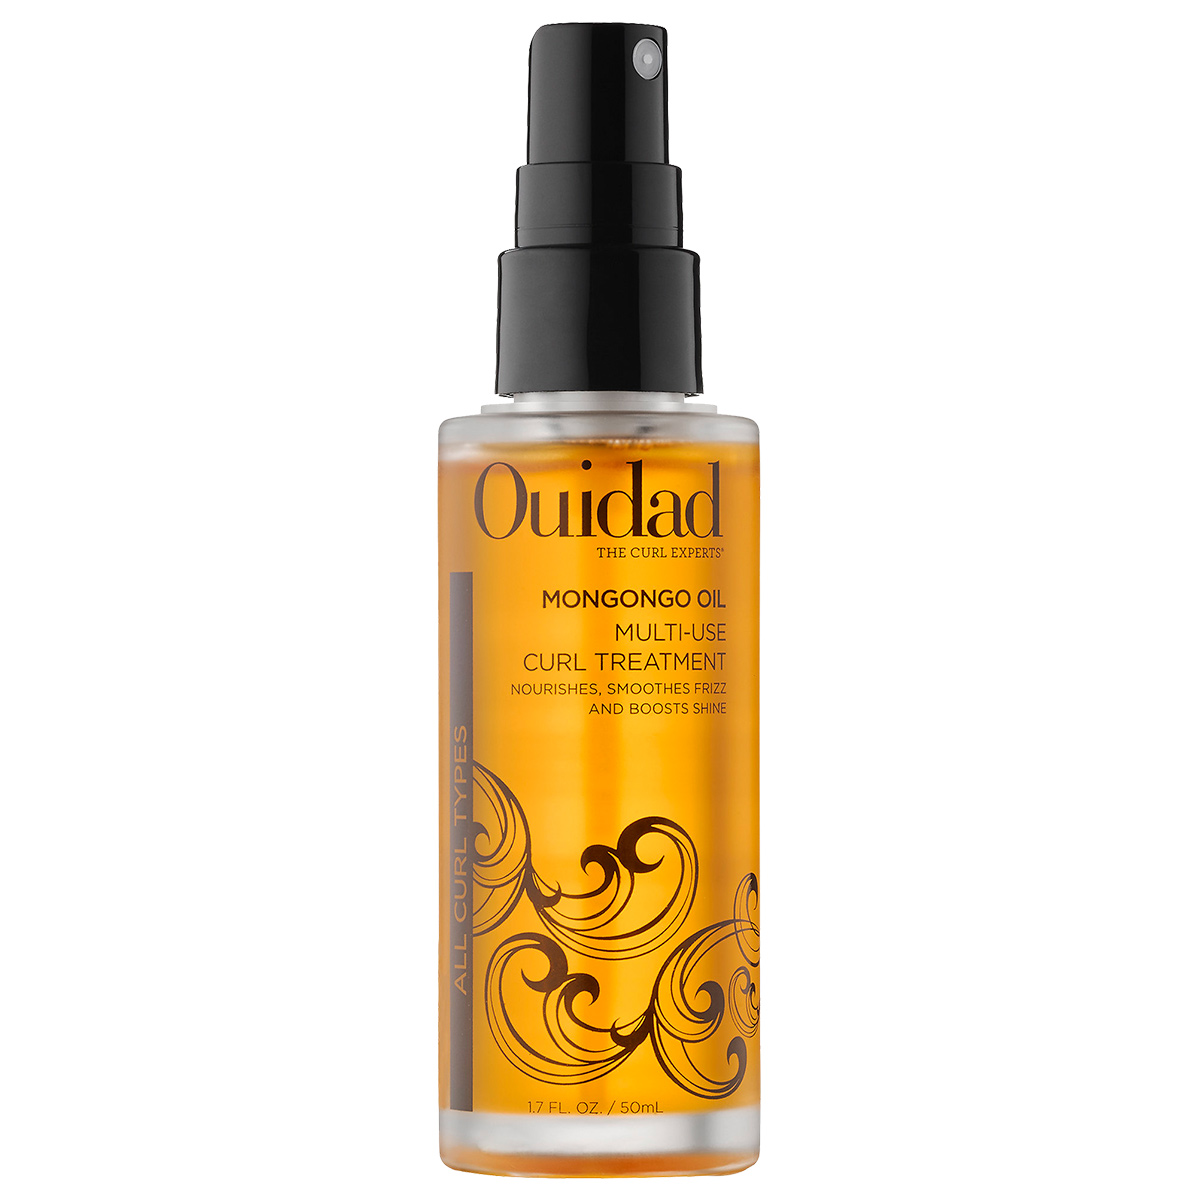 <p>For Curly Hair: Ouidad Mongongo Oil Multi-Use Curl Treatment</p>